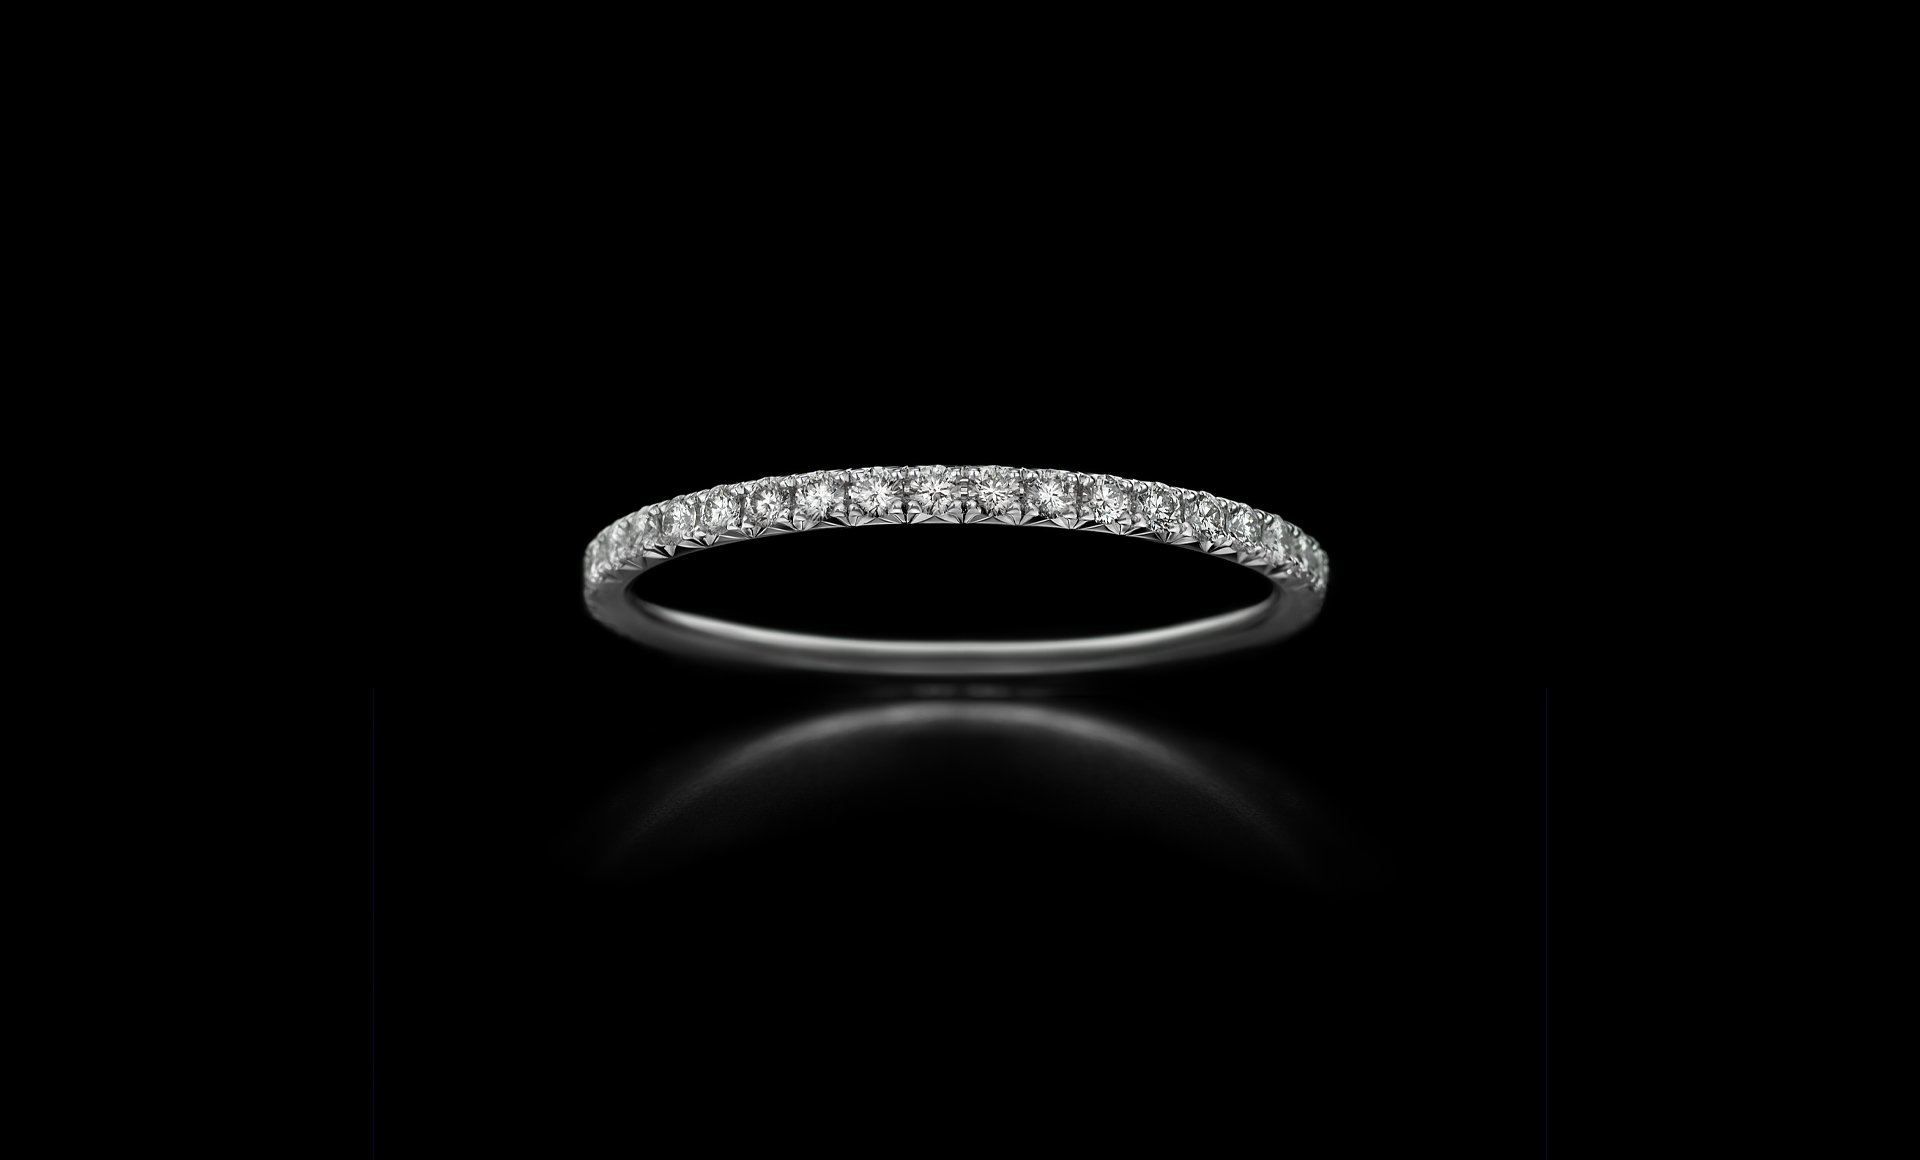 Montluc - Halo No 5. Infinity ring, full set in diamond - set with a continuous line of perfectly selected, brilliant cut diamonds.